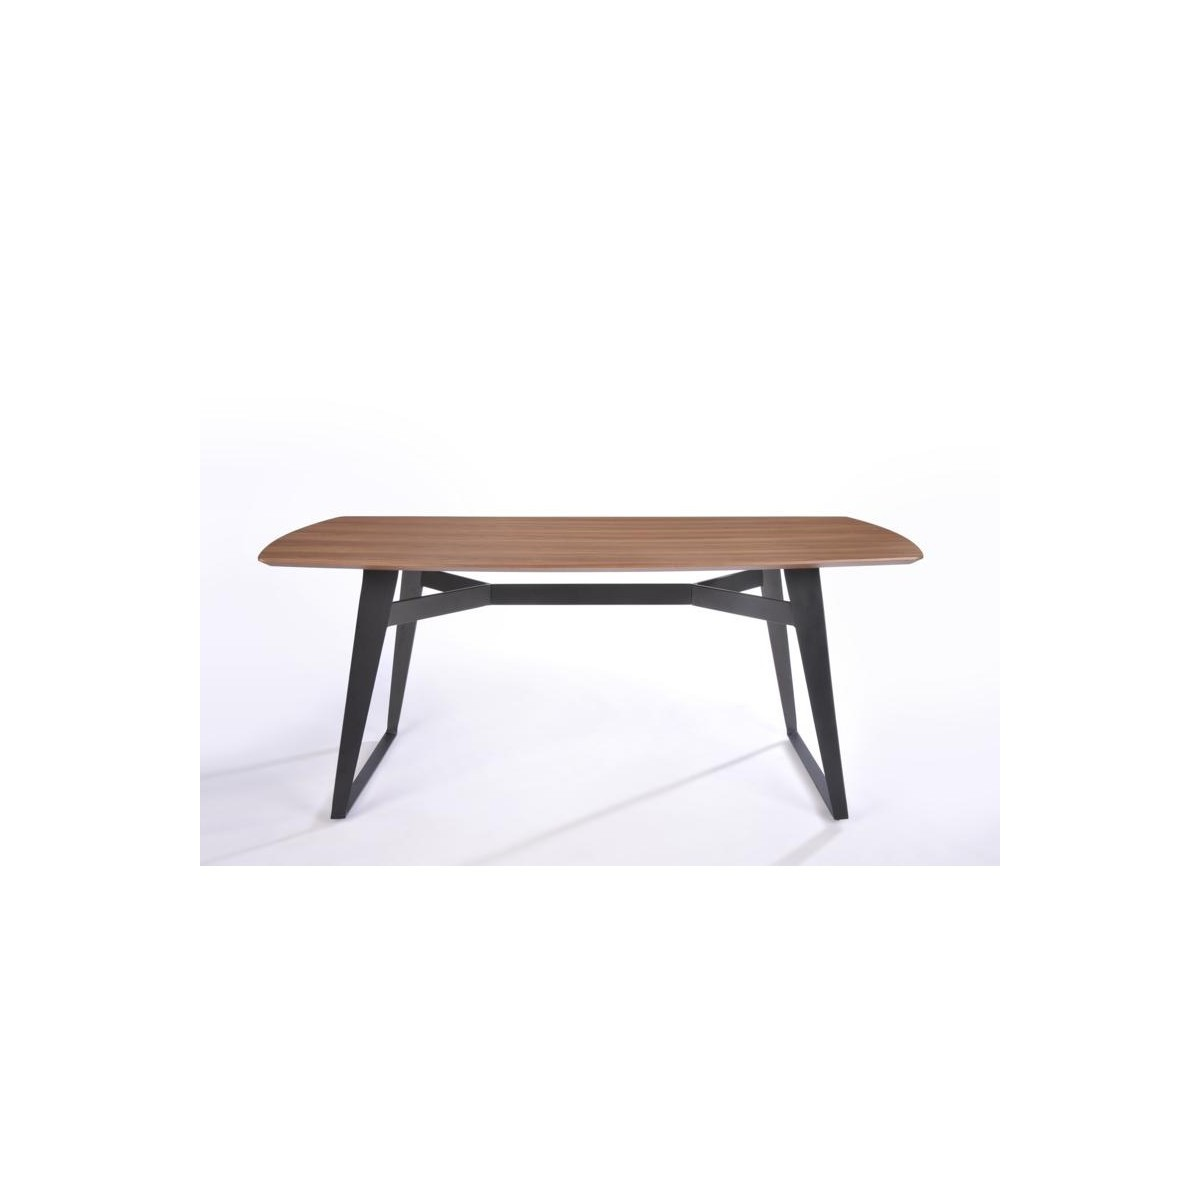 contemporary dining table and vintage mael in wood and metal 200cmx90cmx77 5cm black walnut amp story 4232